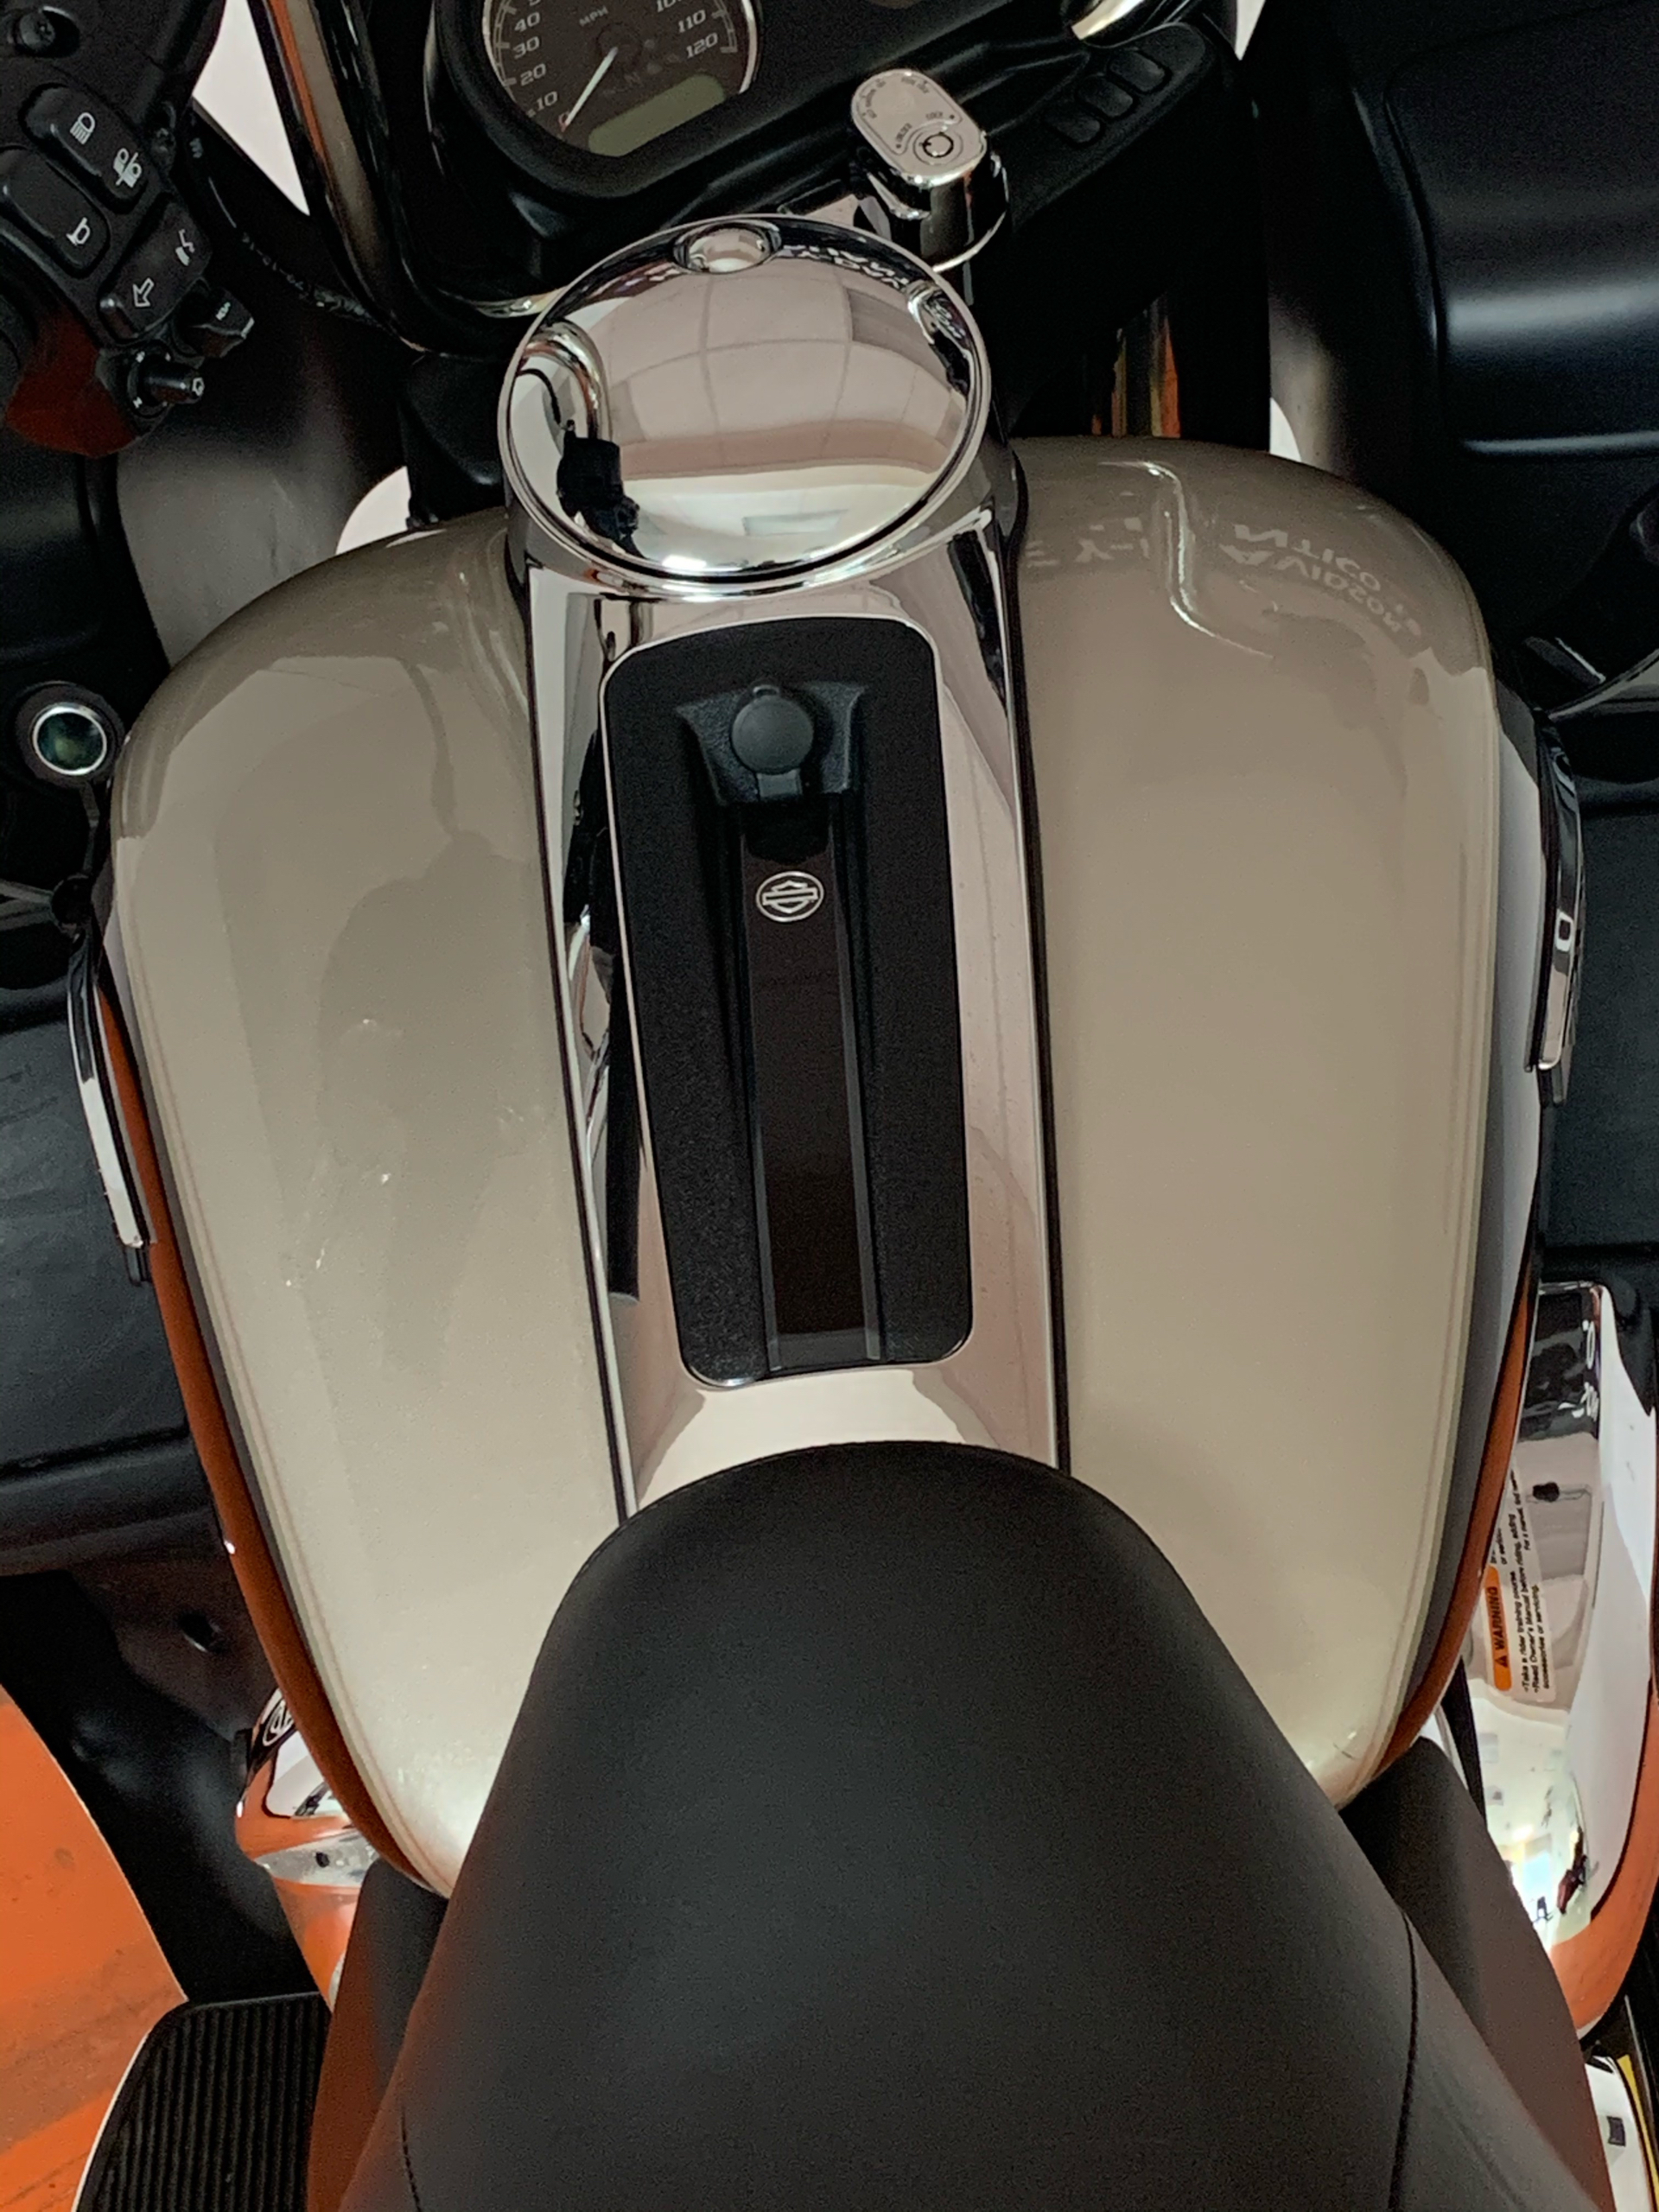 2018 Harley-Davidson Road Glide® Ultra in Dumfries, Virginia - Photo 26